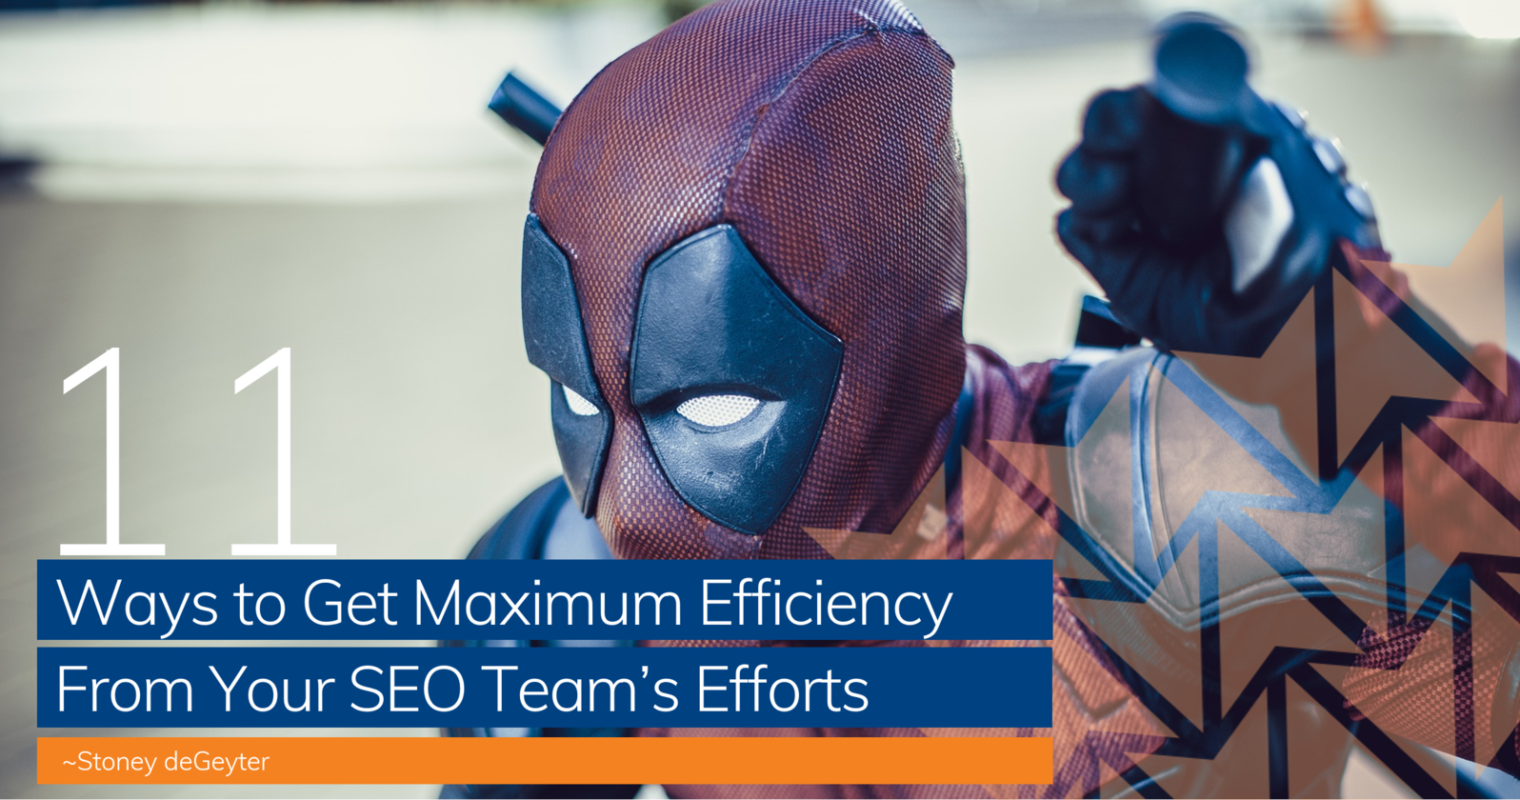 11 Ways Get Maximum Efficiency from Your SEO Team's Efforts